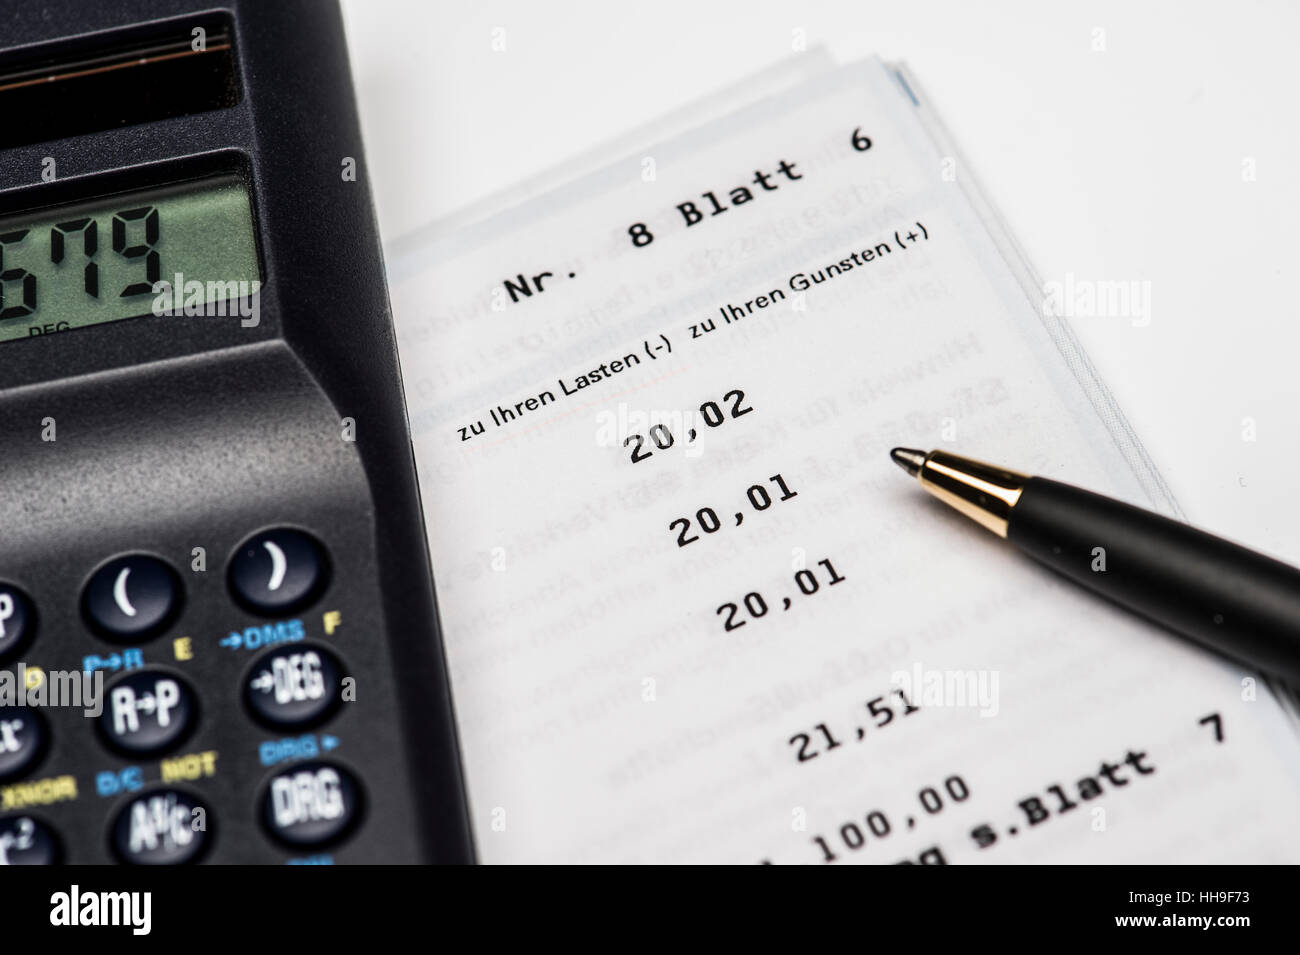 pocket calculator, expression, number, percent, pen, style, pencil, bank, Stock Photo